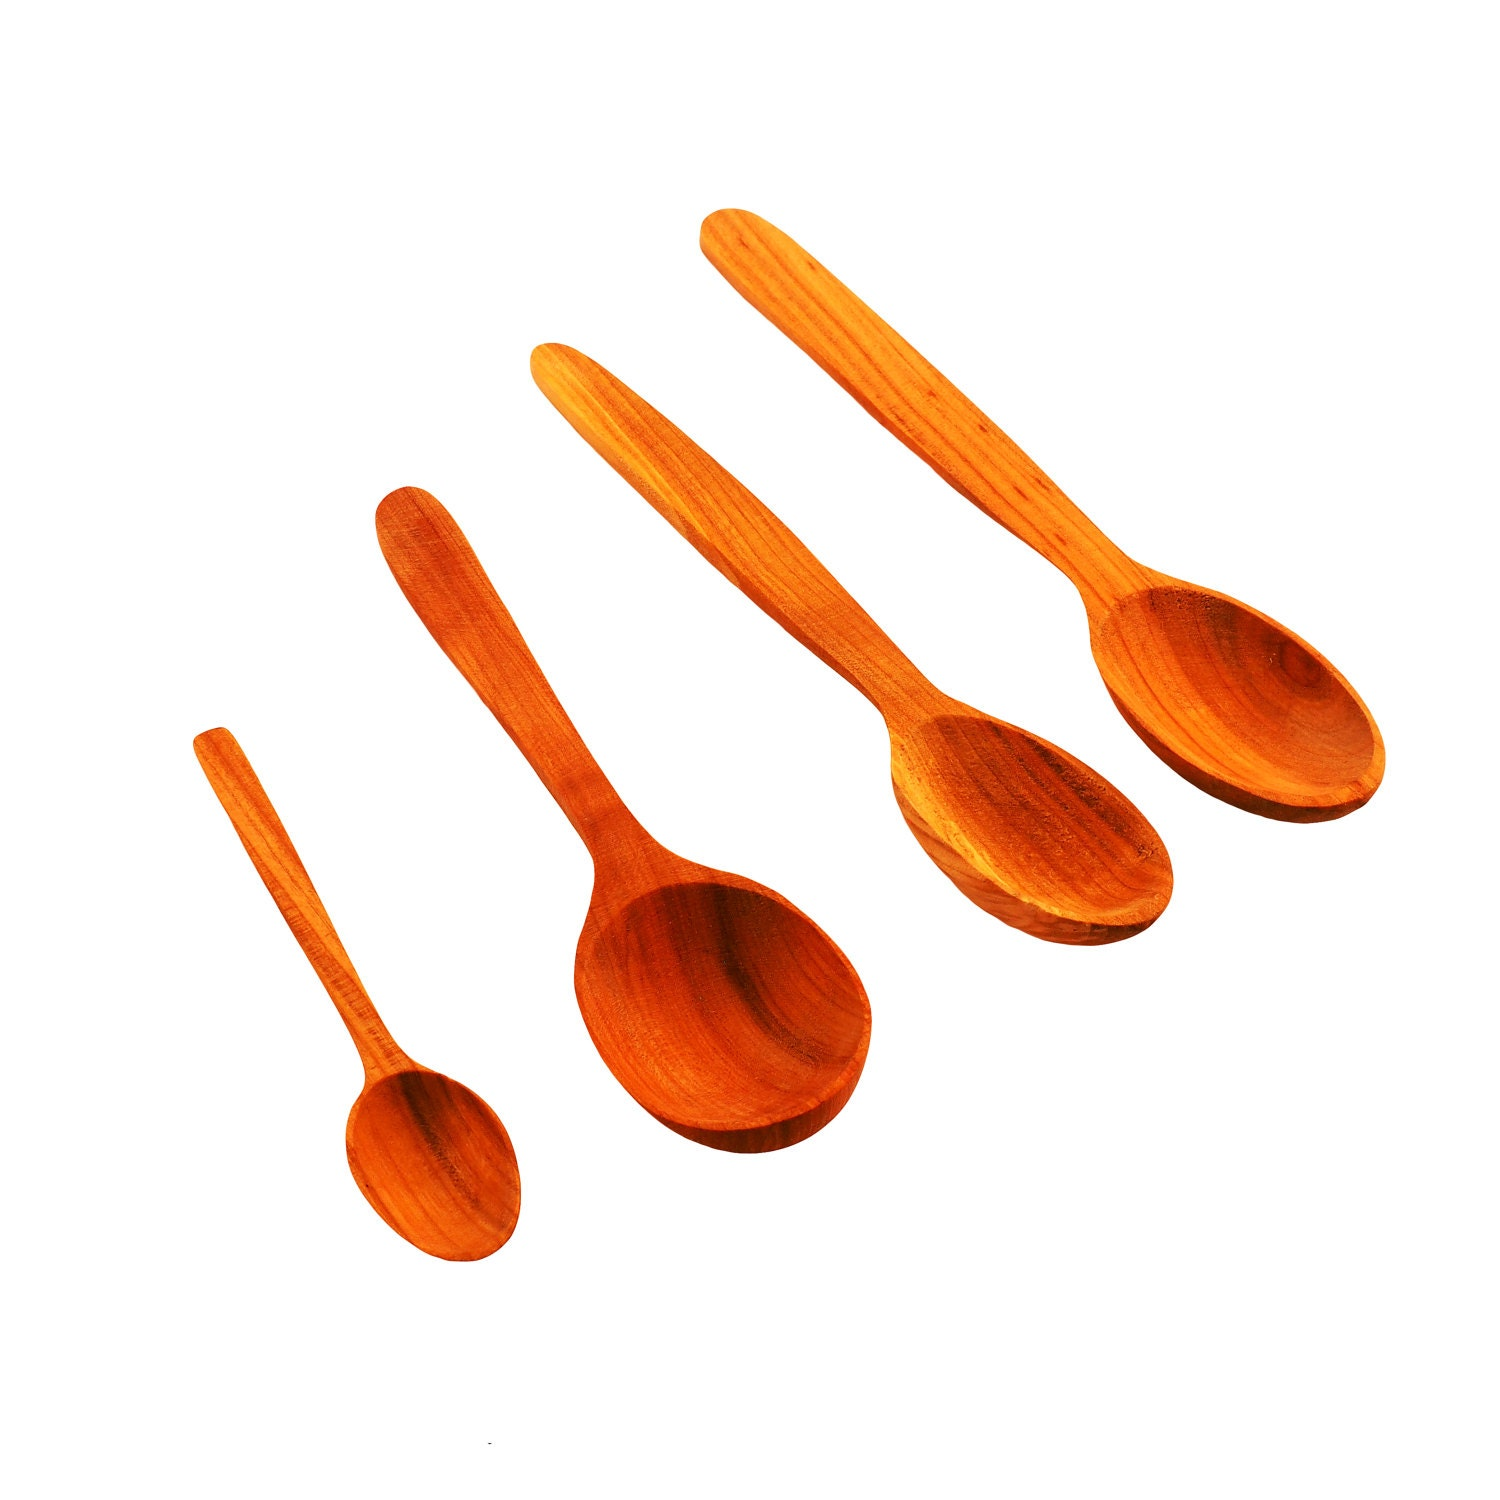 Medieval wooden spoon cherry table spoon medieval for Table utensils